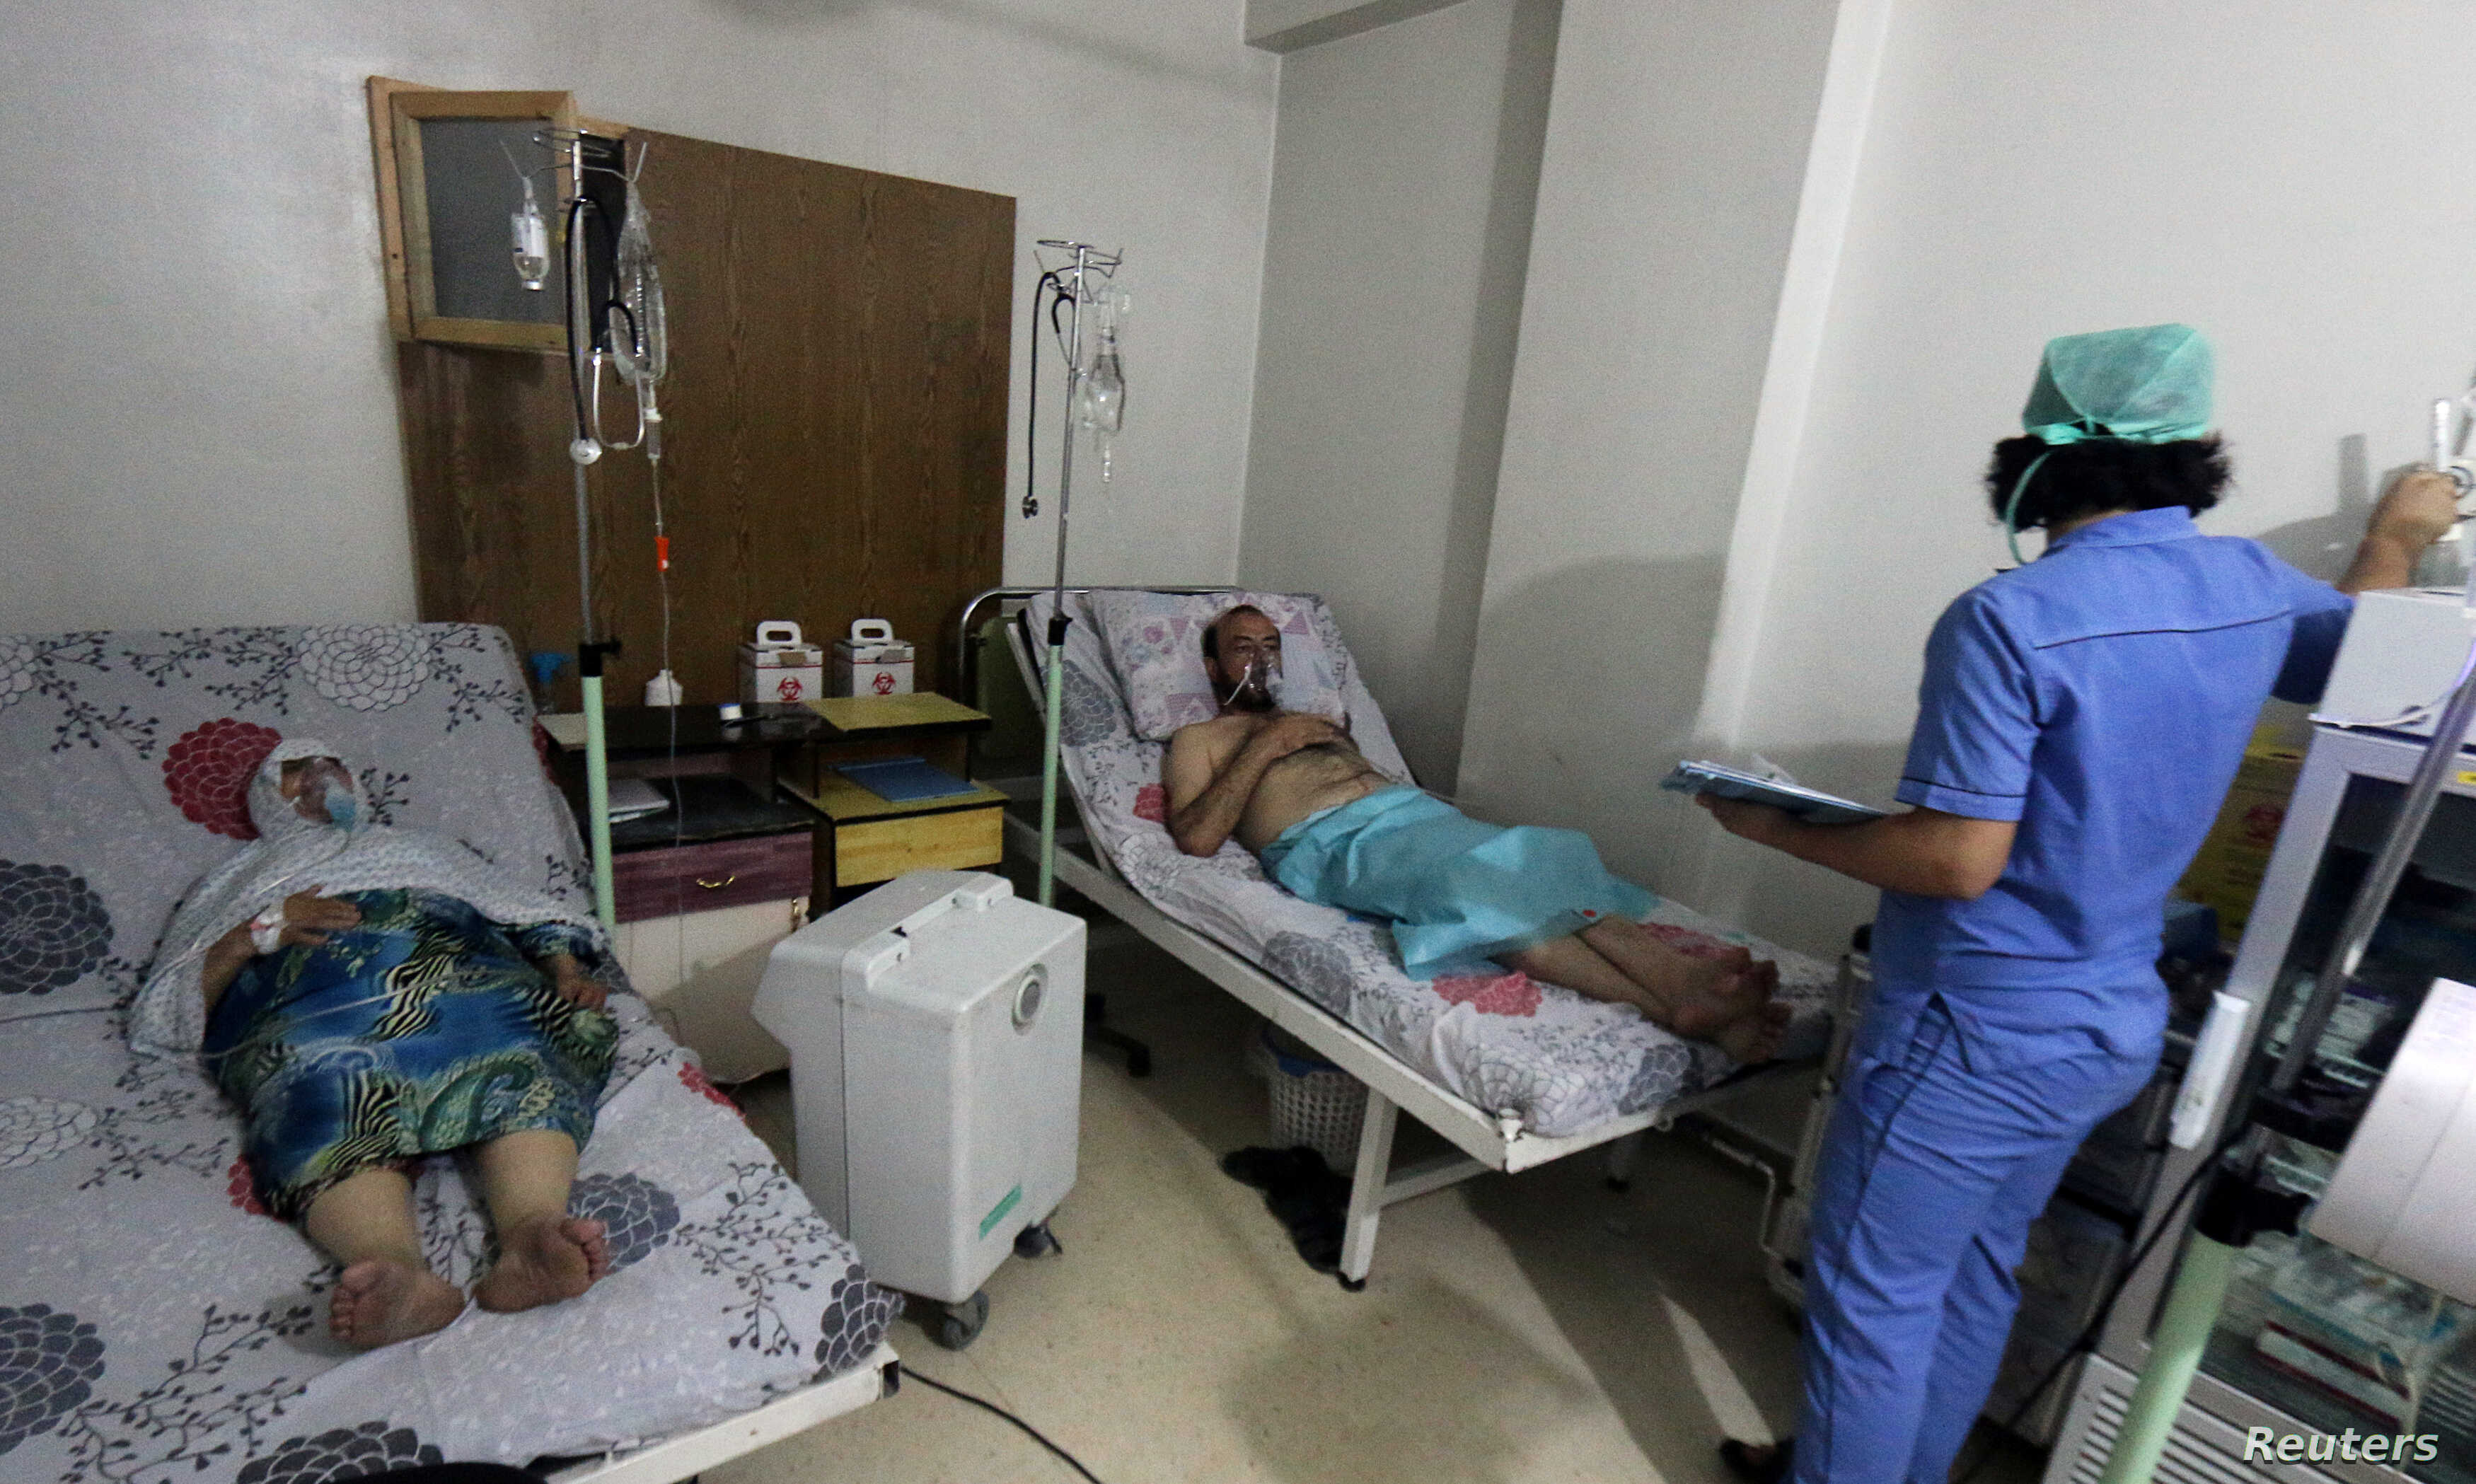 Civilians breathe through an oxygen mask at al-Quds hospital, after a hospital and a civil defence group said a gas, what they believed to be chlorine, was dropped alongside barrel bombs on a neighbourhood of the Syrian city of Aleppo, Syria, early A...